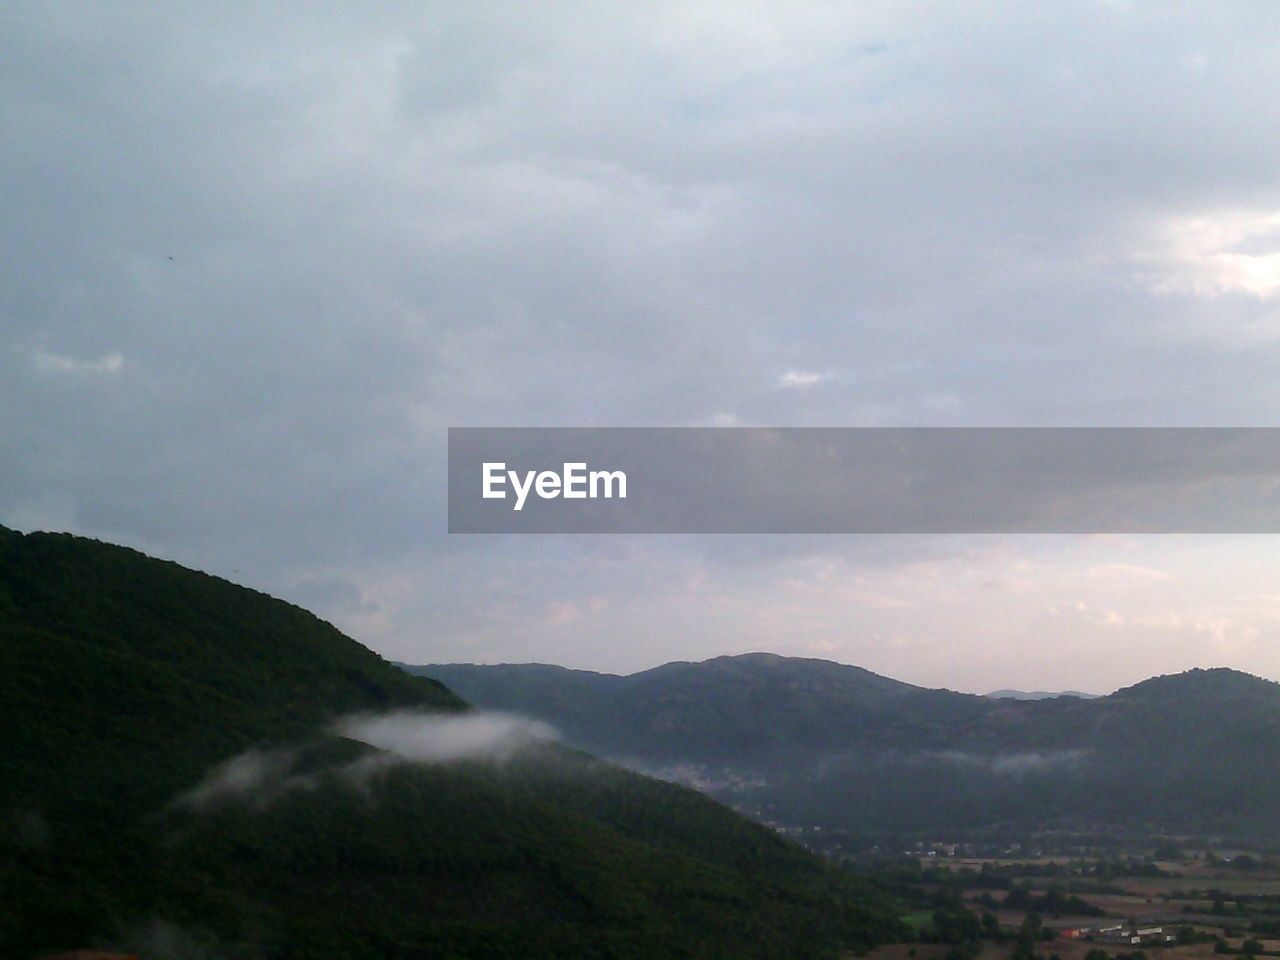 mountain, nature, sky, beauty in nature, tranquility, no people, scenics, tranquil scene, outdoors, cloud - sky, landscape, day